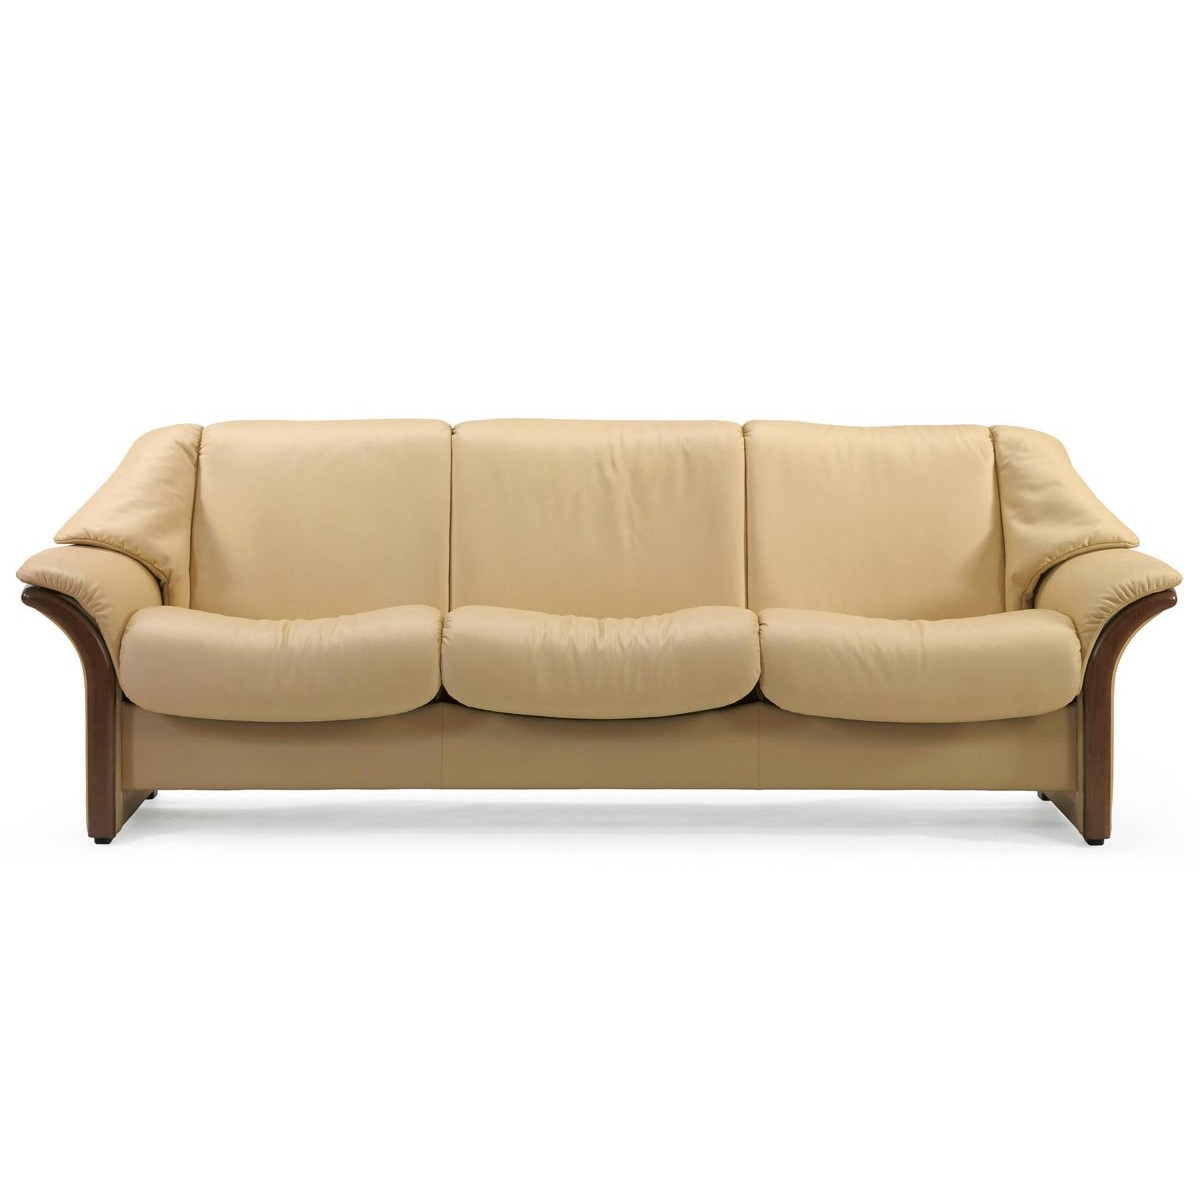 living full ground couches seating floor the room of size couch cushion and low modern lounge level sofas sofa in furniture inexpensive